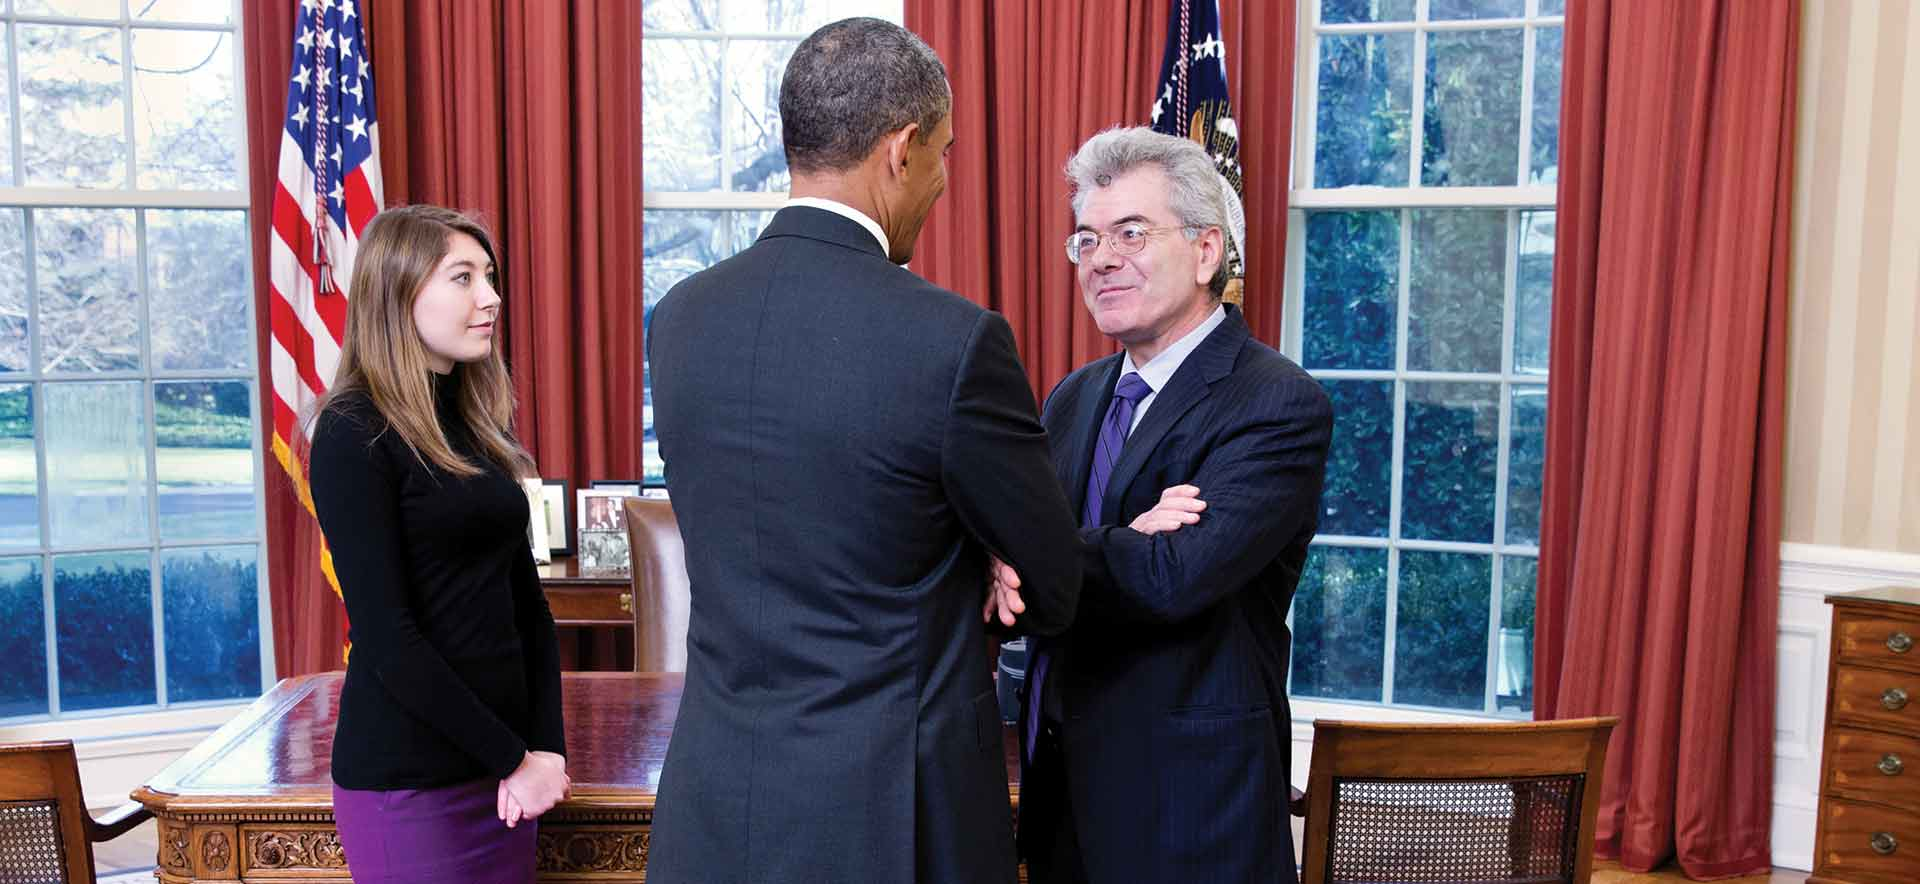 Gary Samore talks with President Obama in the Oval office